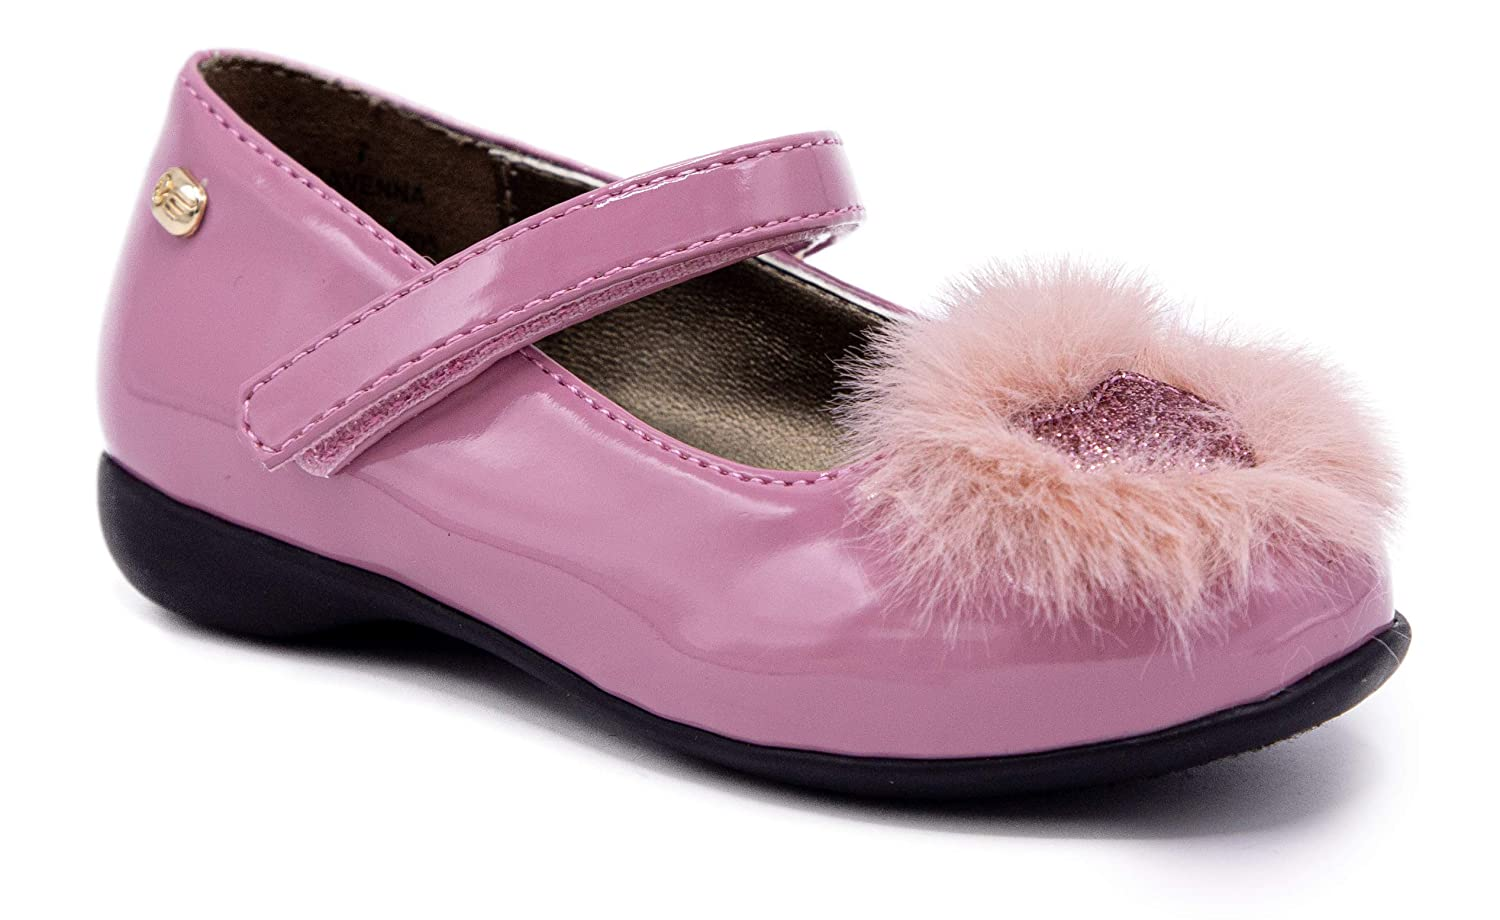 Naturino E Kids Poeta Girls Slip On Ballet Flat with Ankle Strap and Big Pom-Pom Dress Shoe Loafer